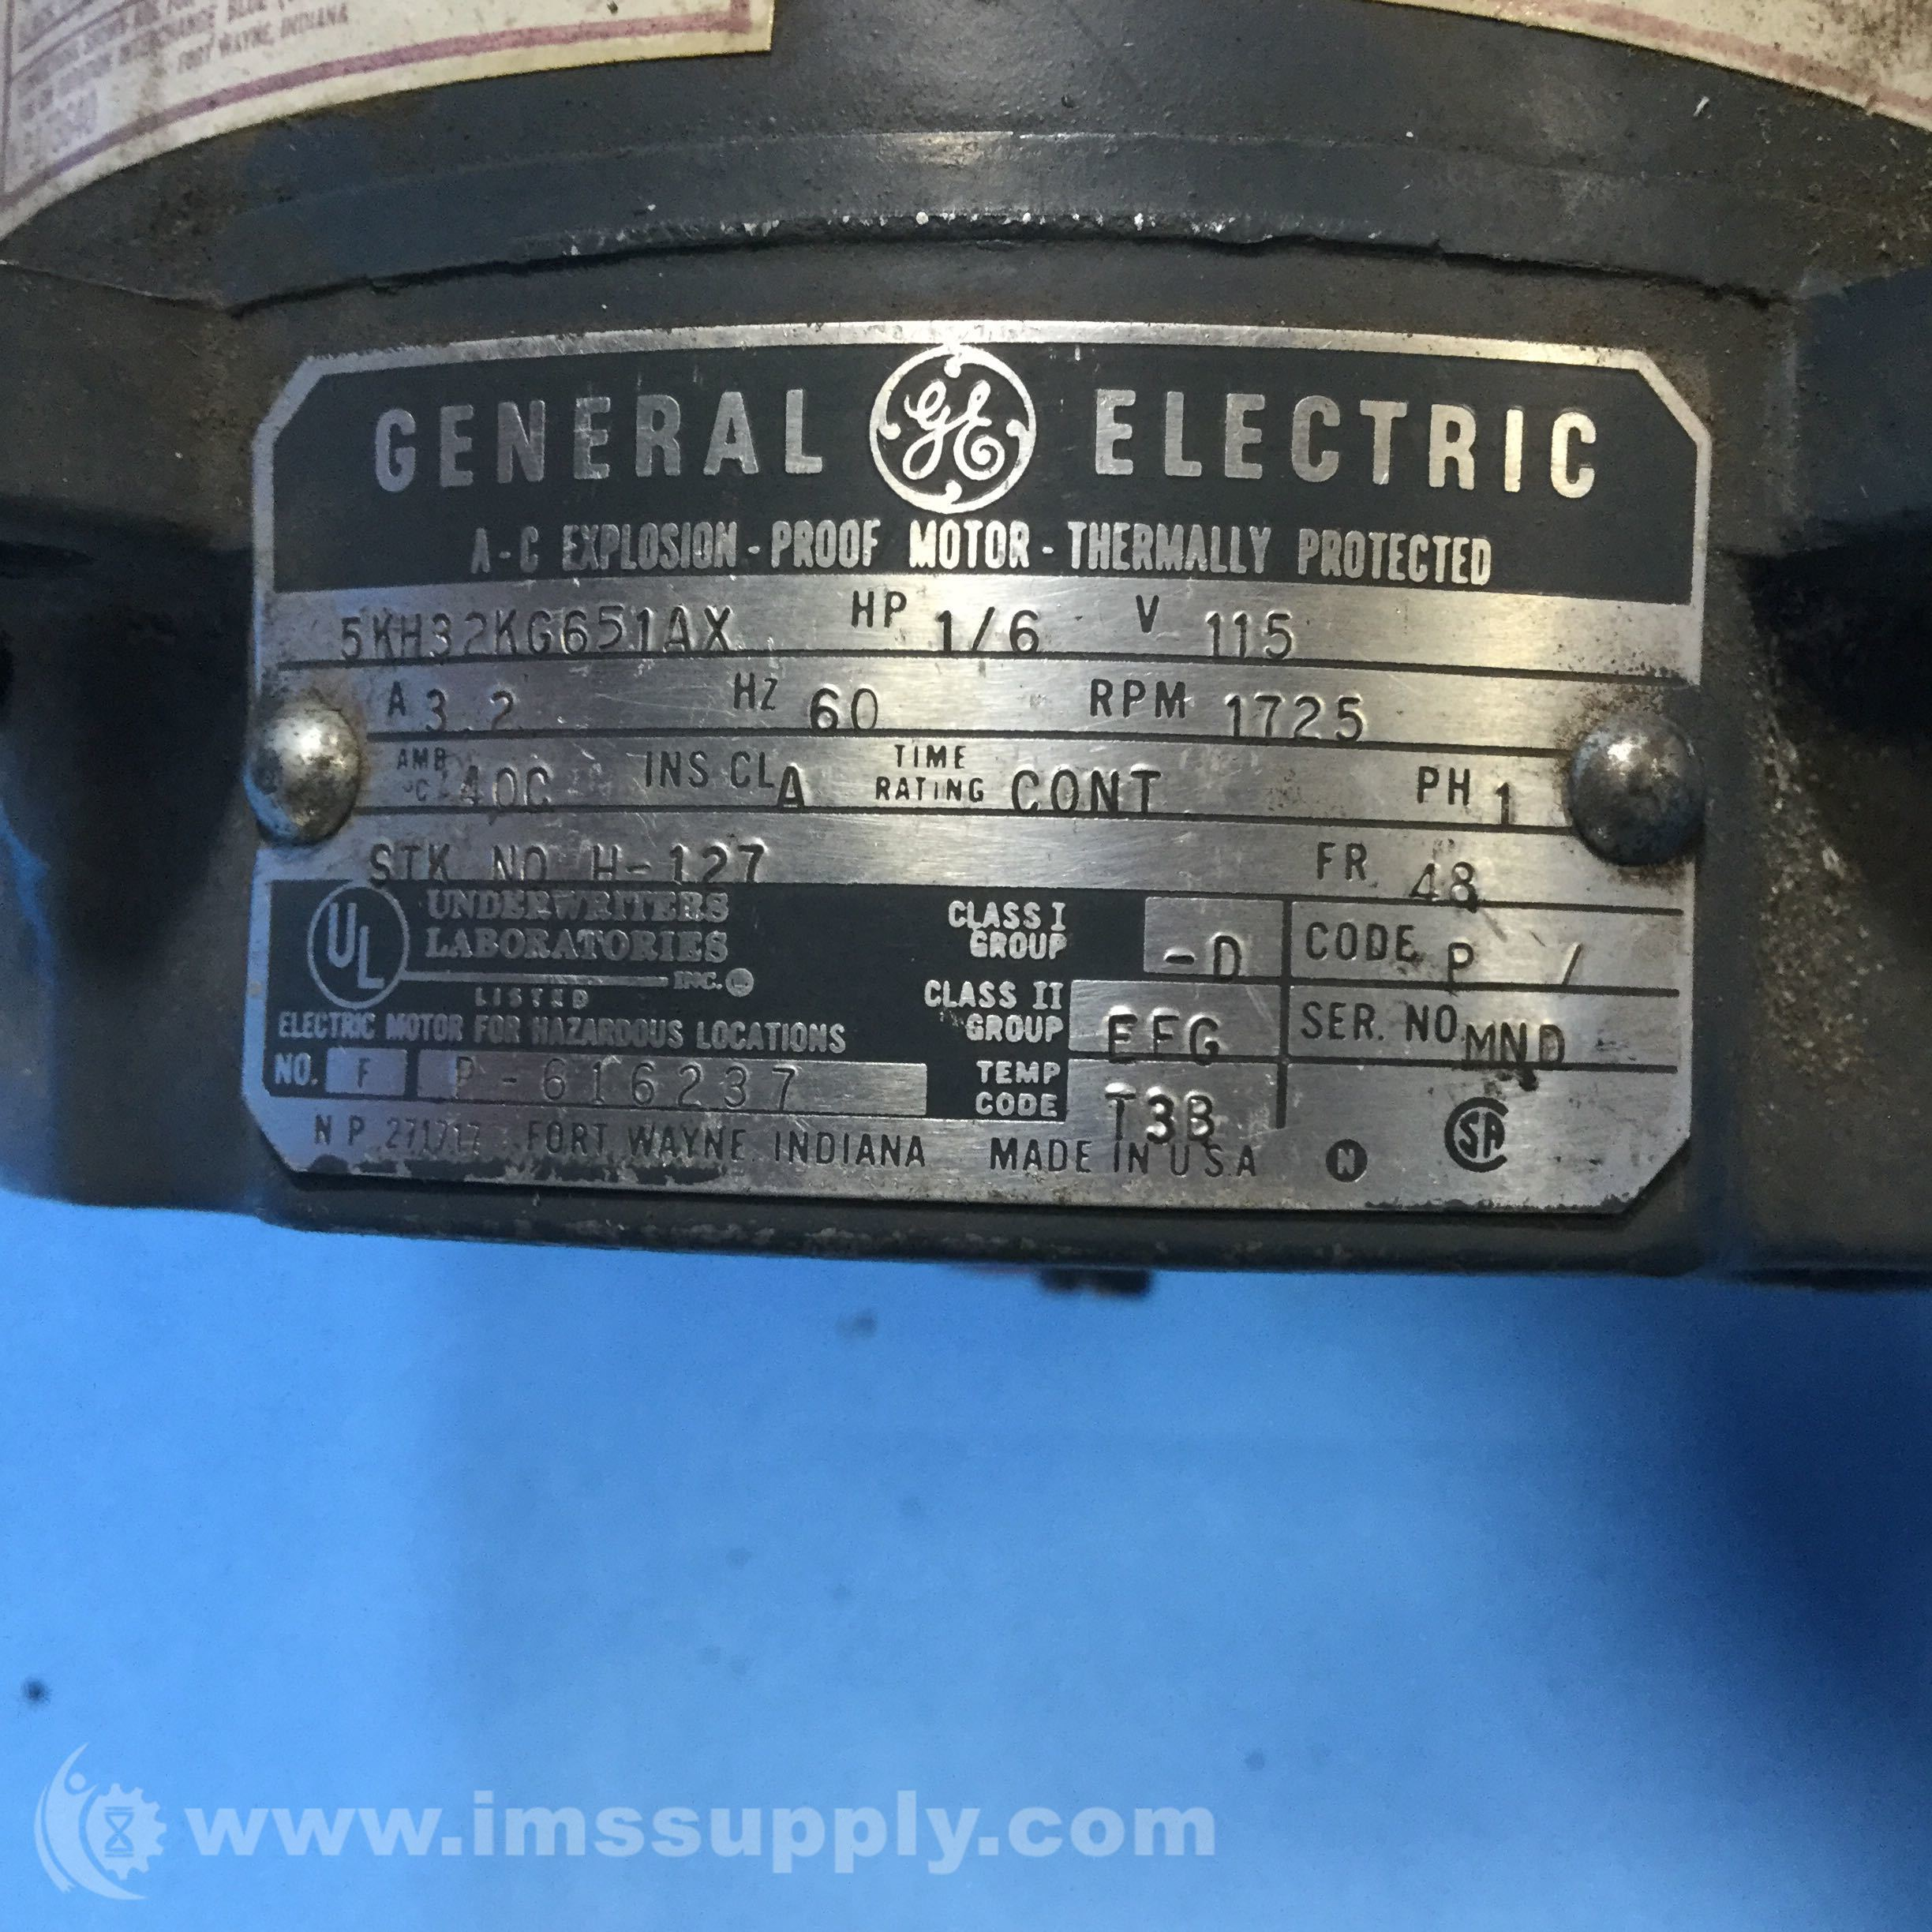 General electric 5kh32kg651ax 1 6hp 1725rpm 1ph 48frame ac for Ge electric motors catalog